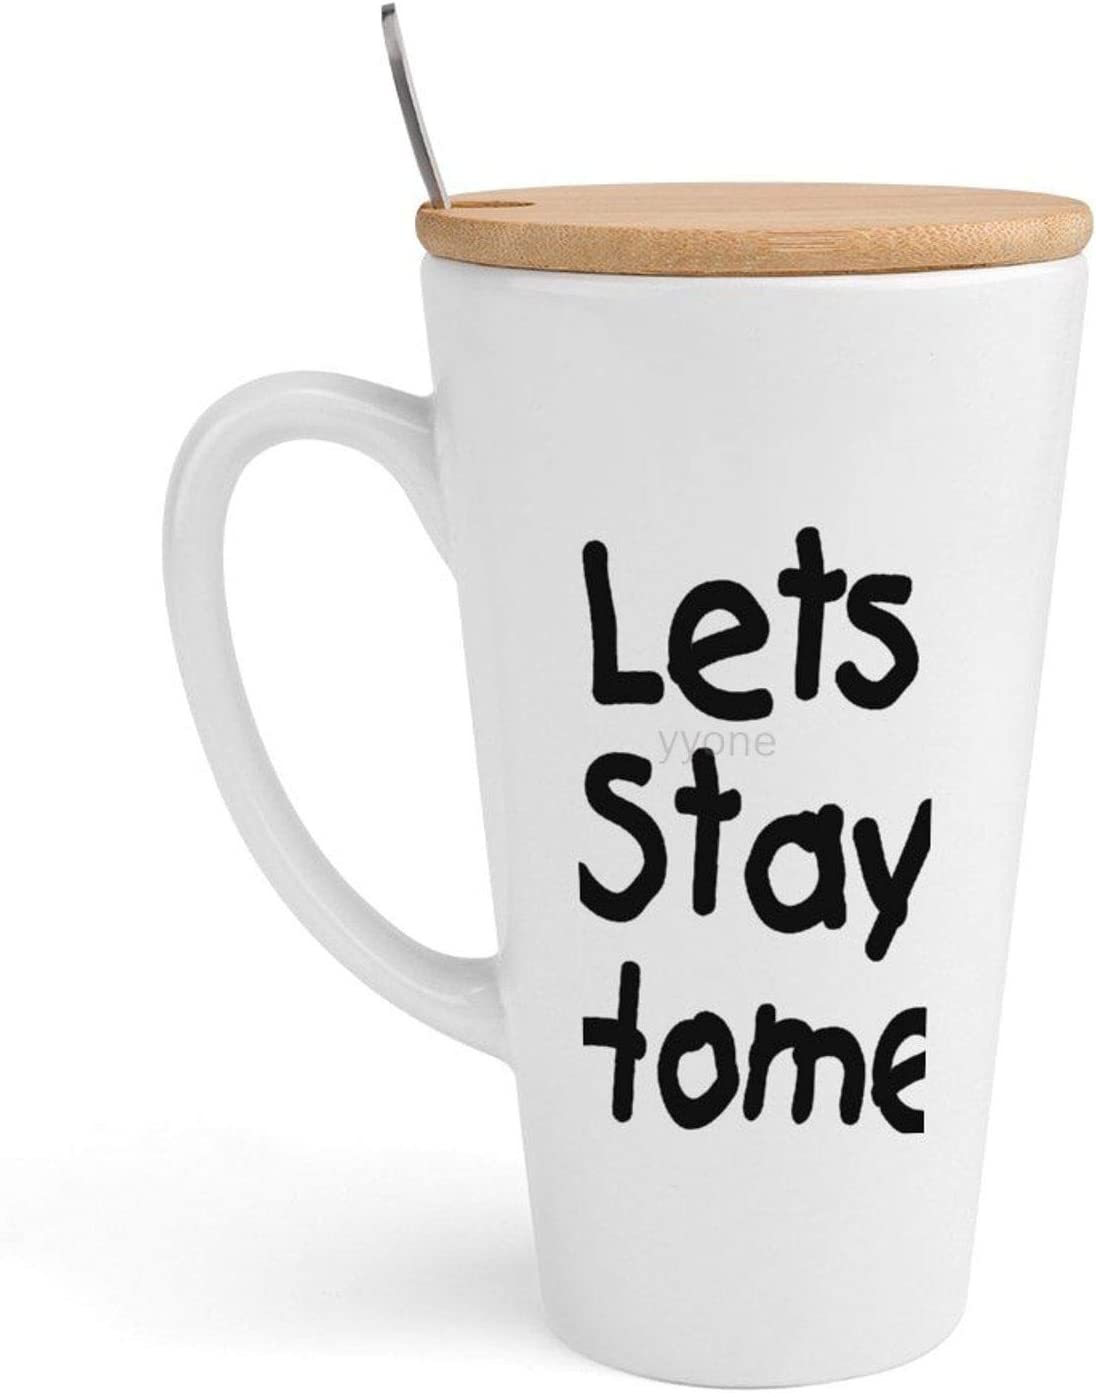 Ceramic Coffee Mug Tea Cup Lets Stay Home 1 - Birthday Christmas Gift Tea Cup White Ceramic 500ML